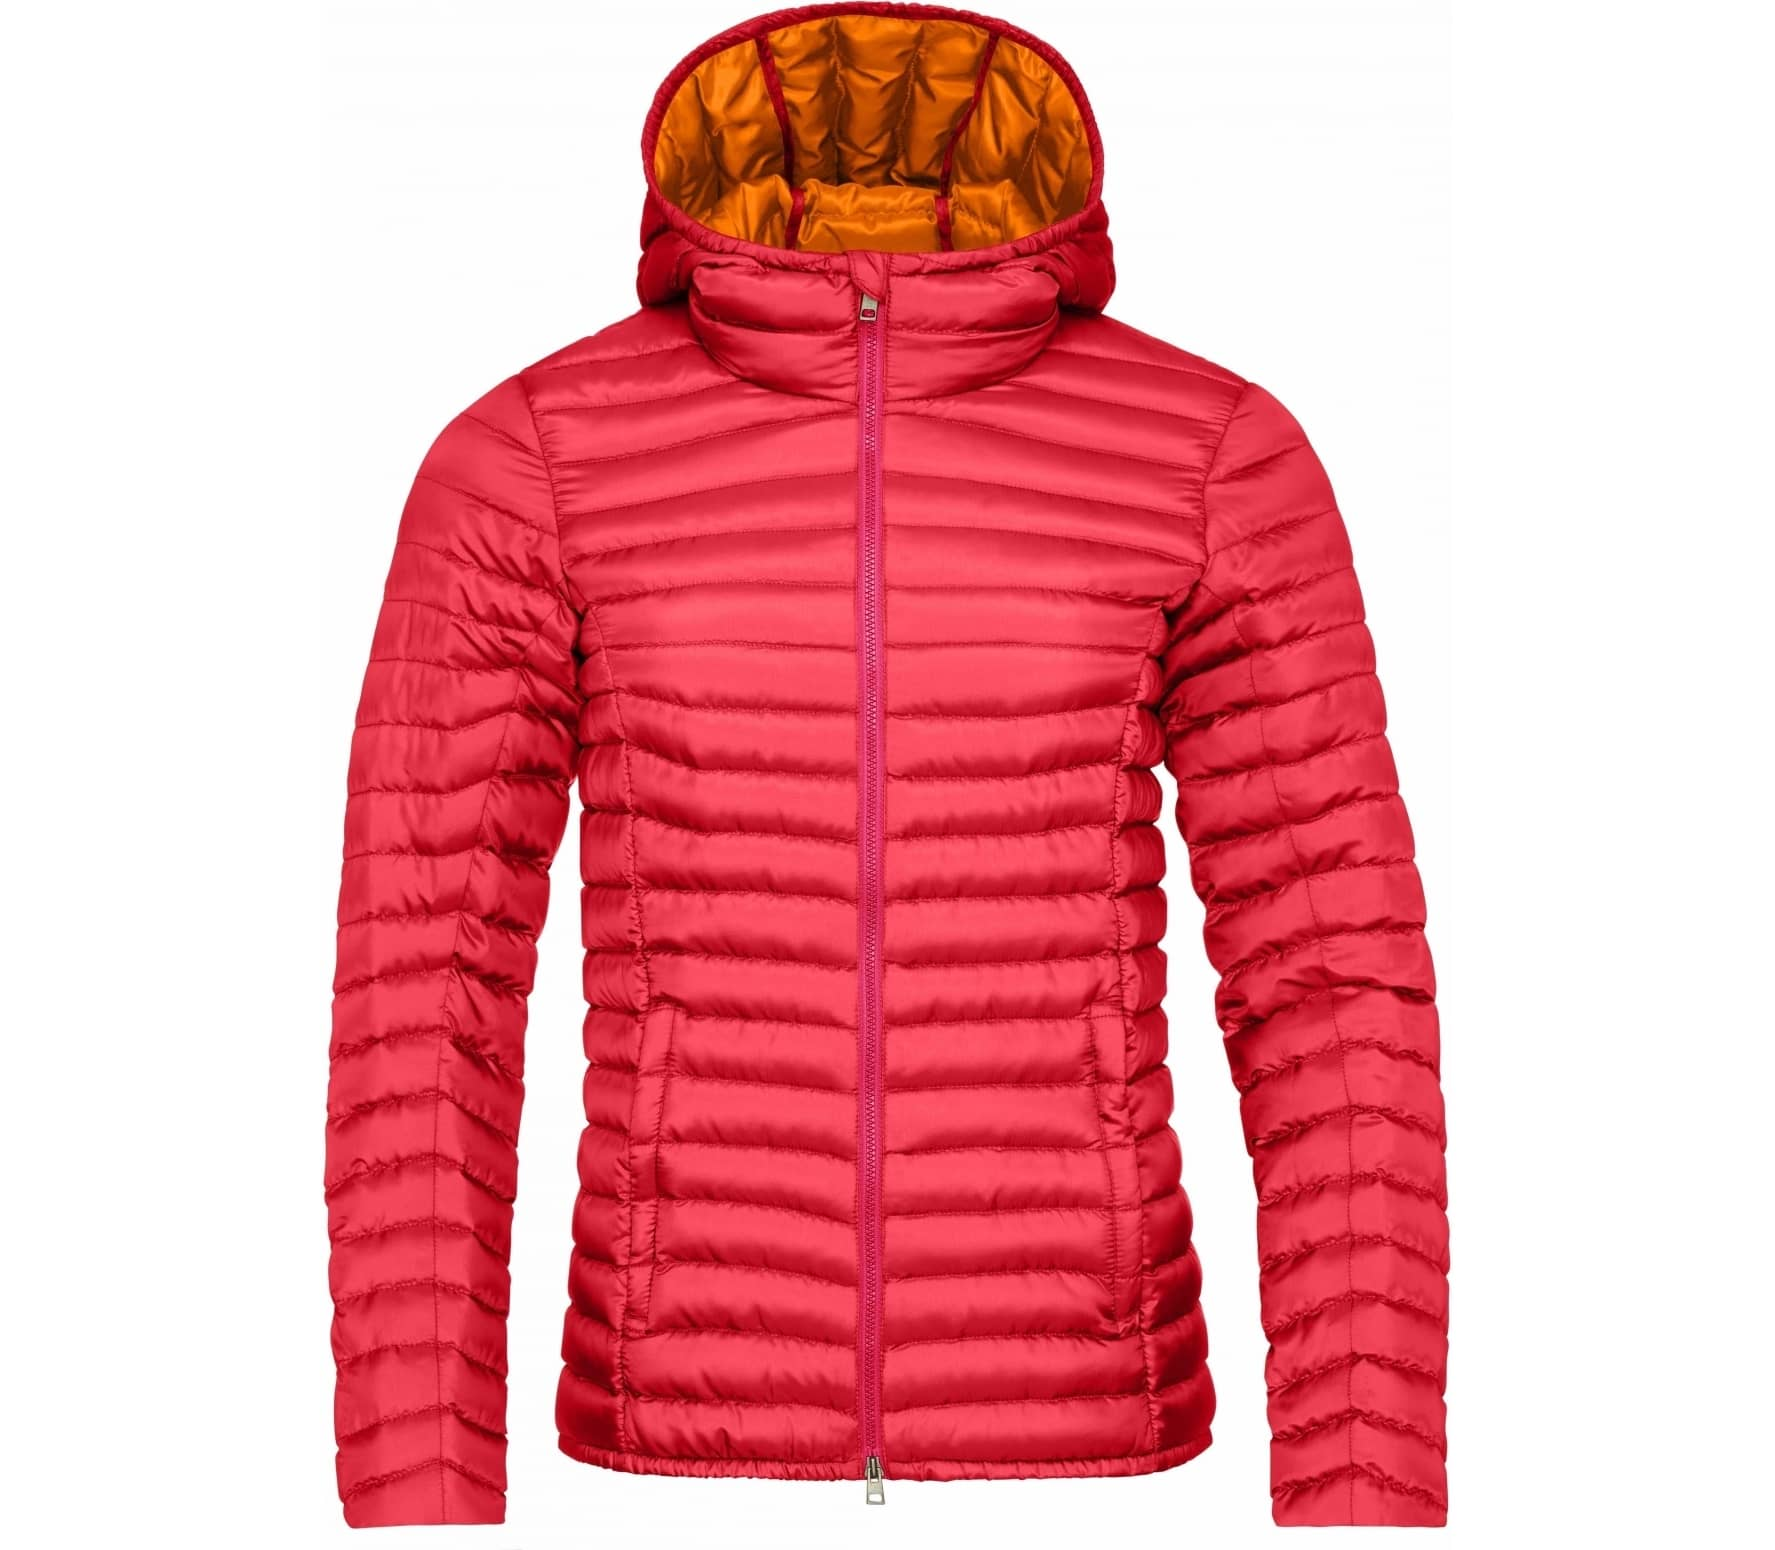 ead2be8a21f5 Kjus - Cypress Hooded women s down jacket (dark red orange) - buy it ...